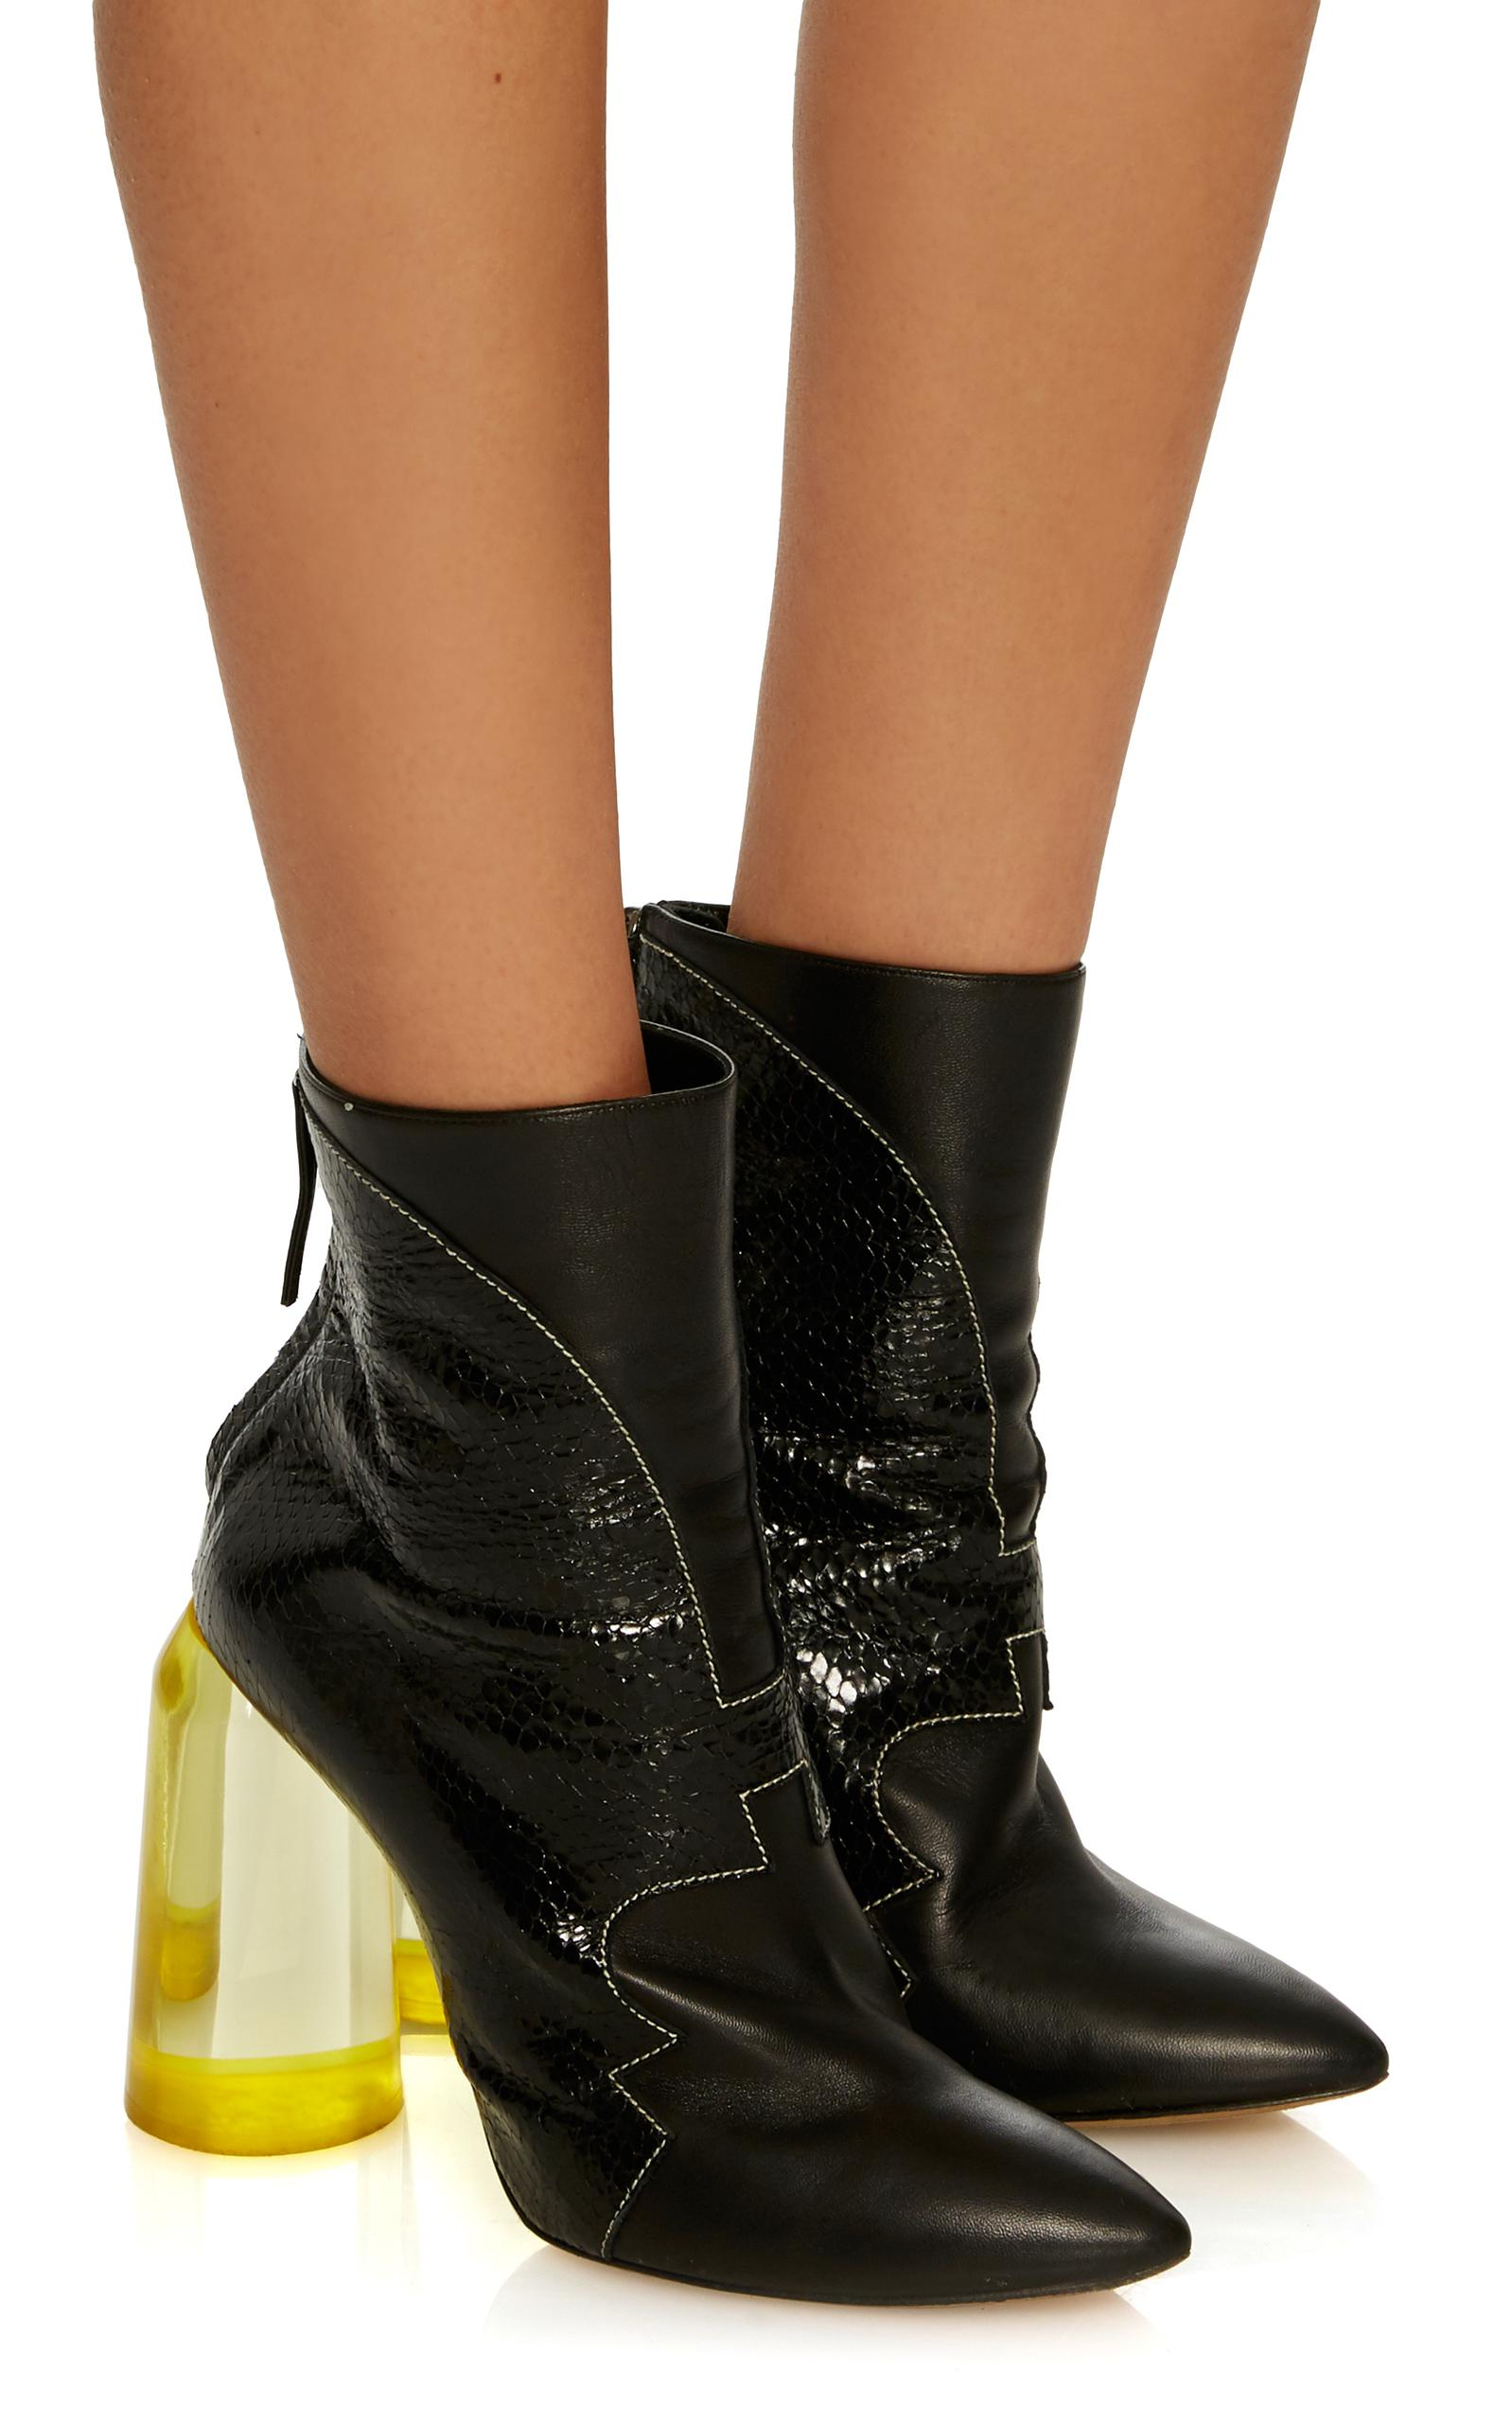 Ellery Leather High Heel Ankle Boot With Yellow Heel in Black